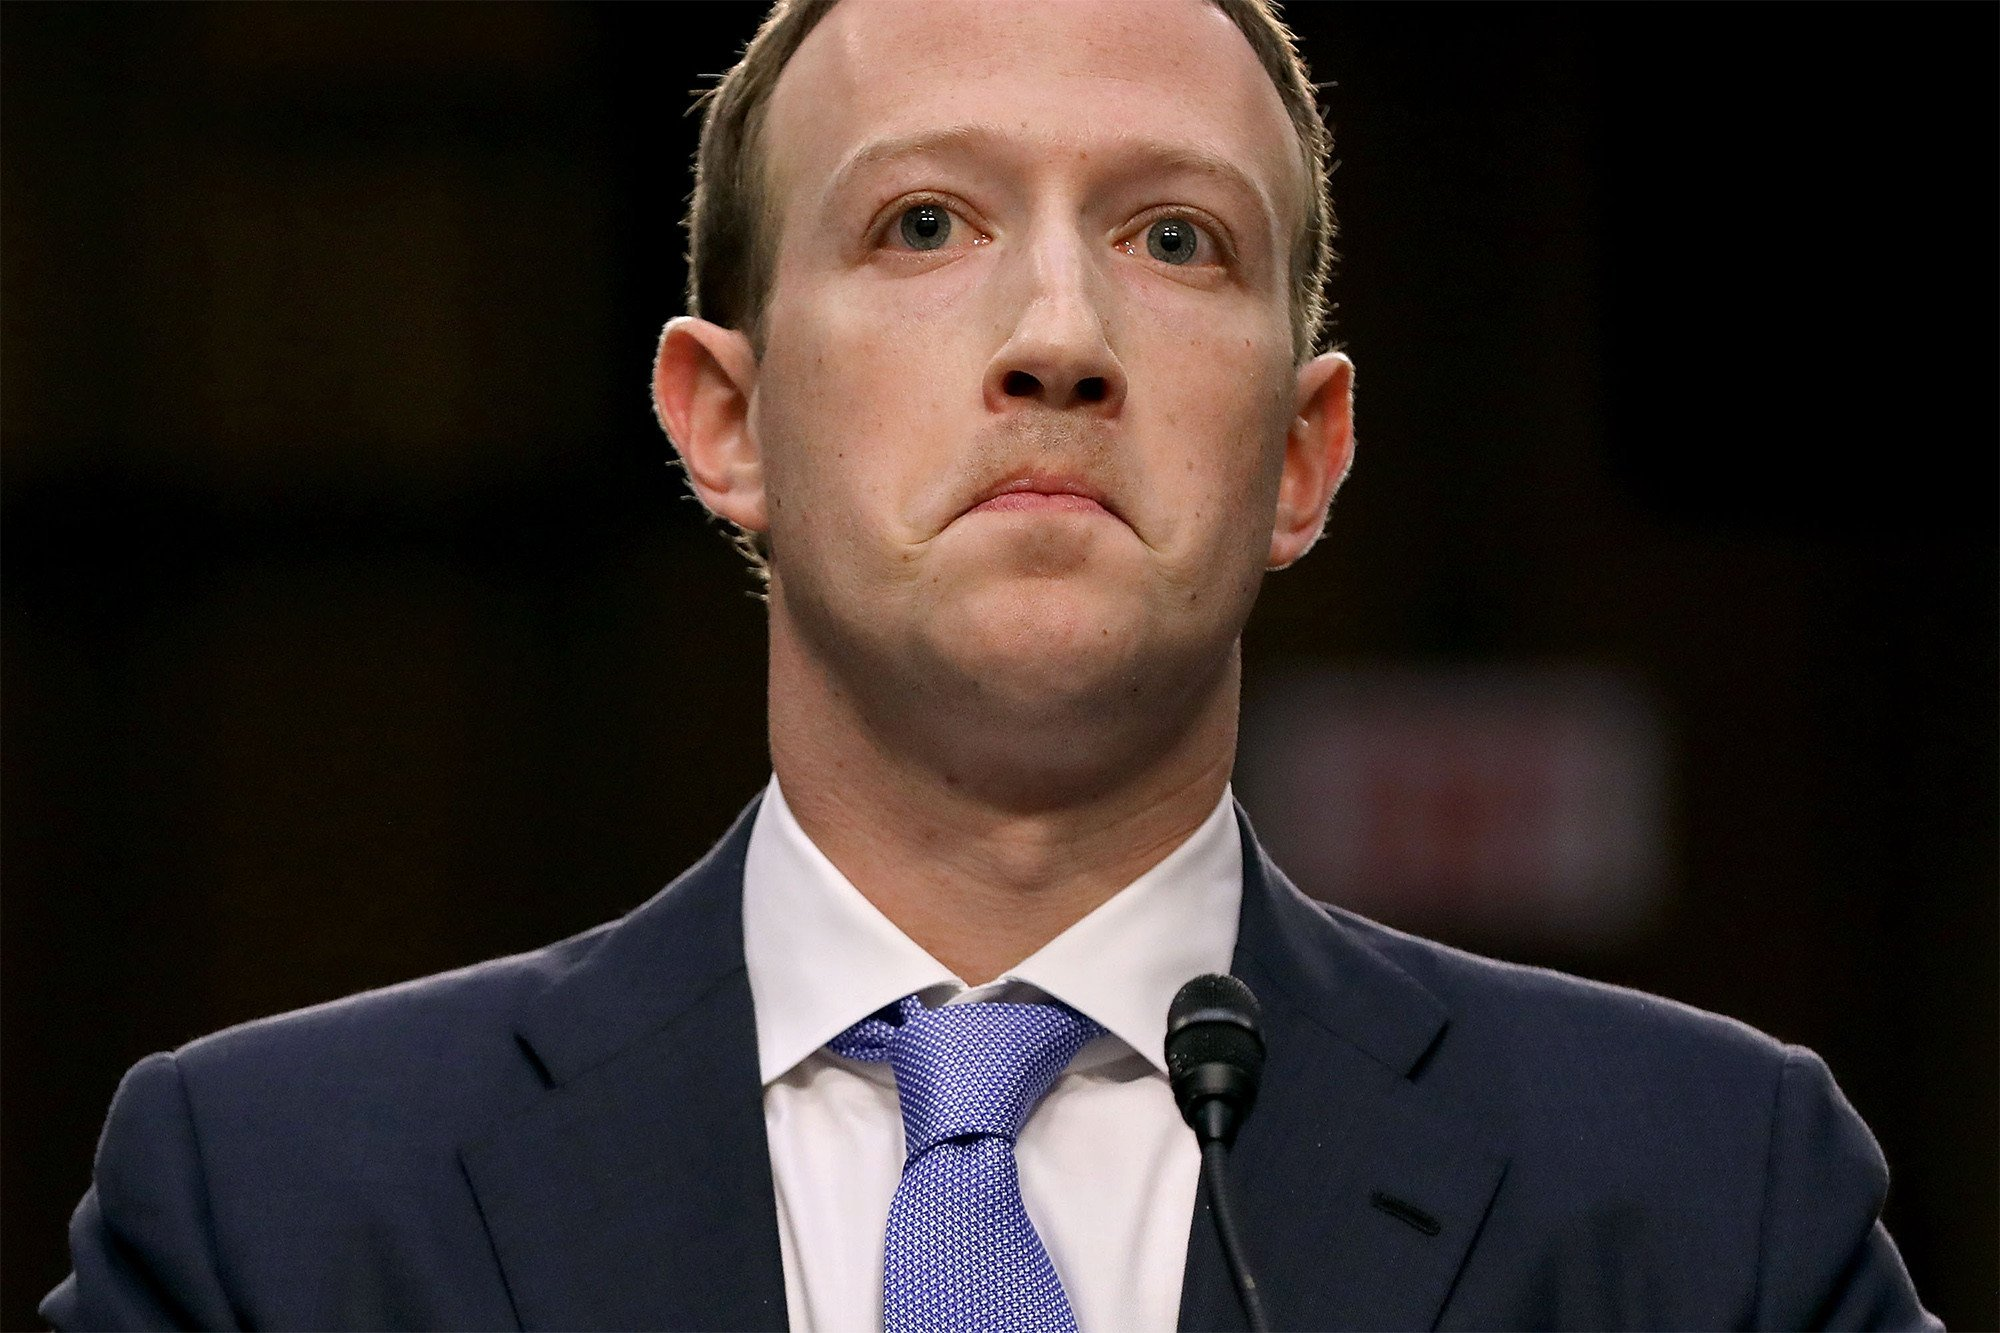 Facebook's latest update made users even more miserable